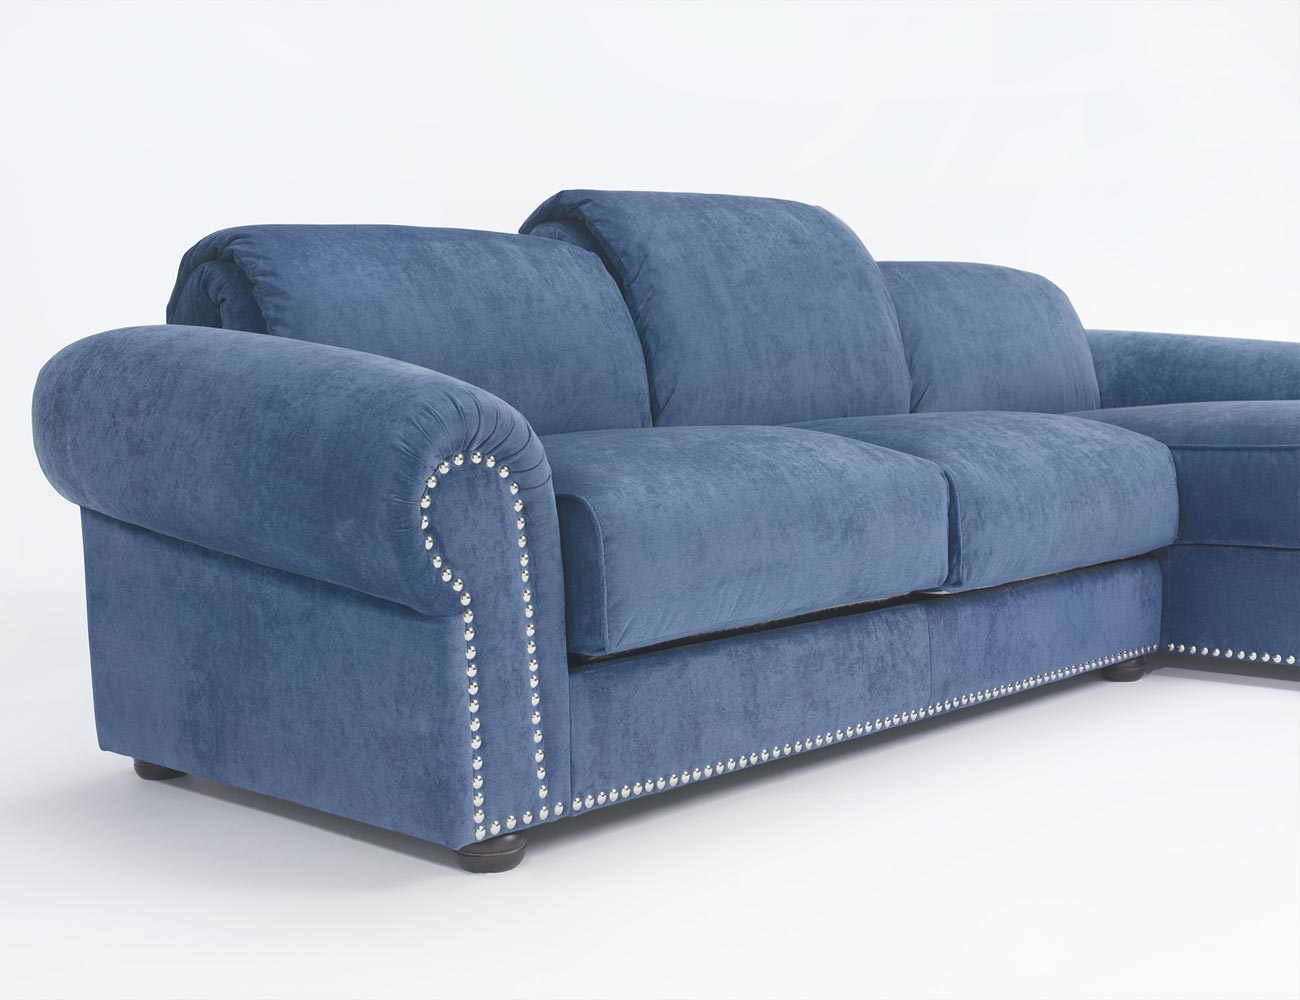 Sofa chaiselongue gran lujo decorativo azul 130